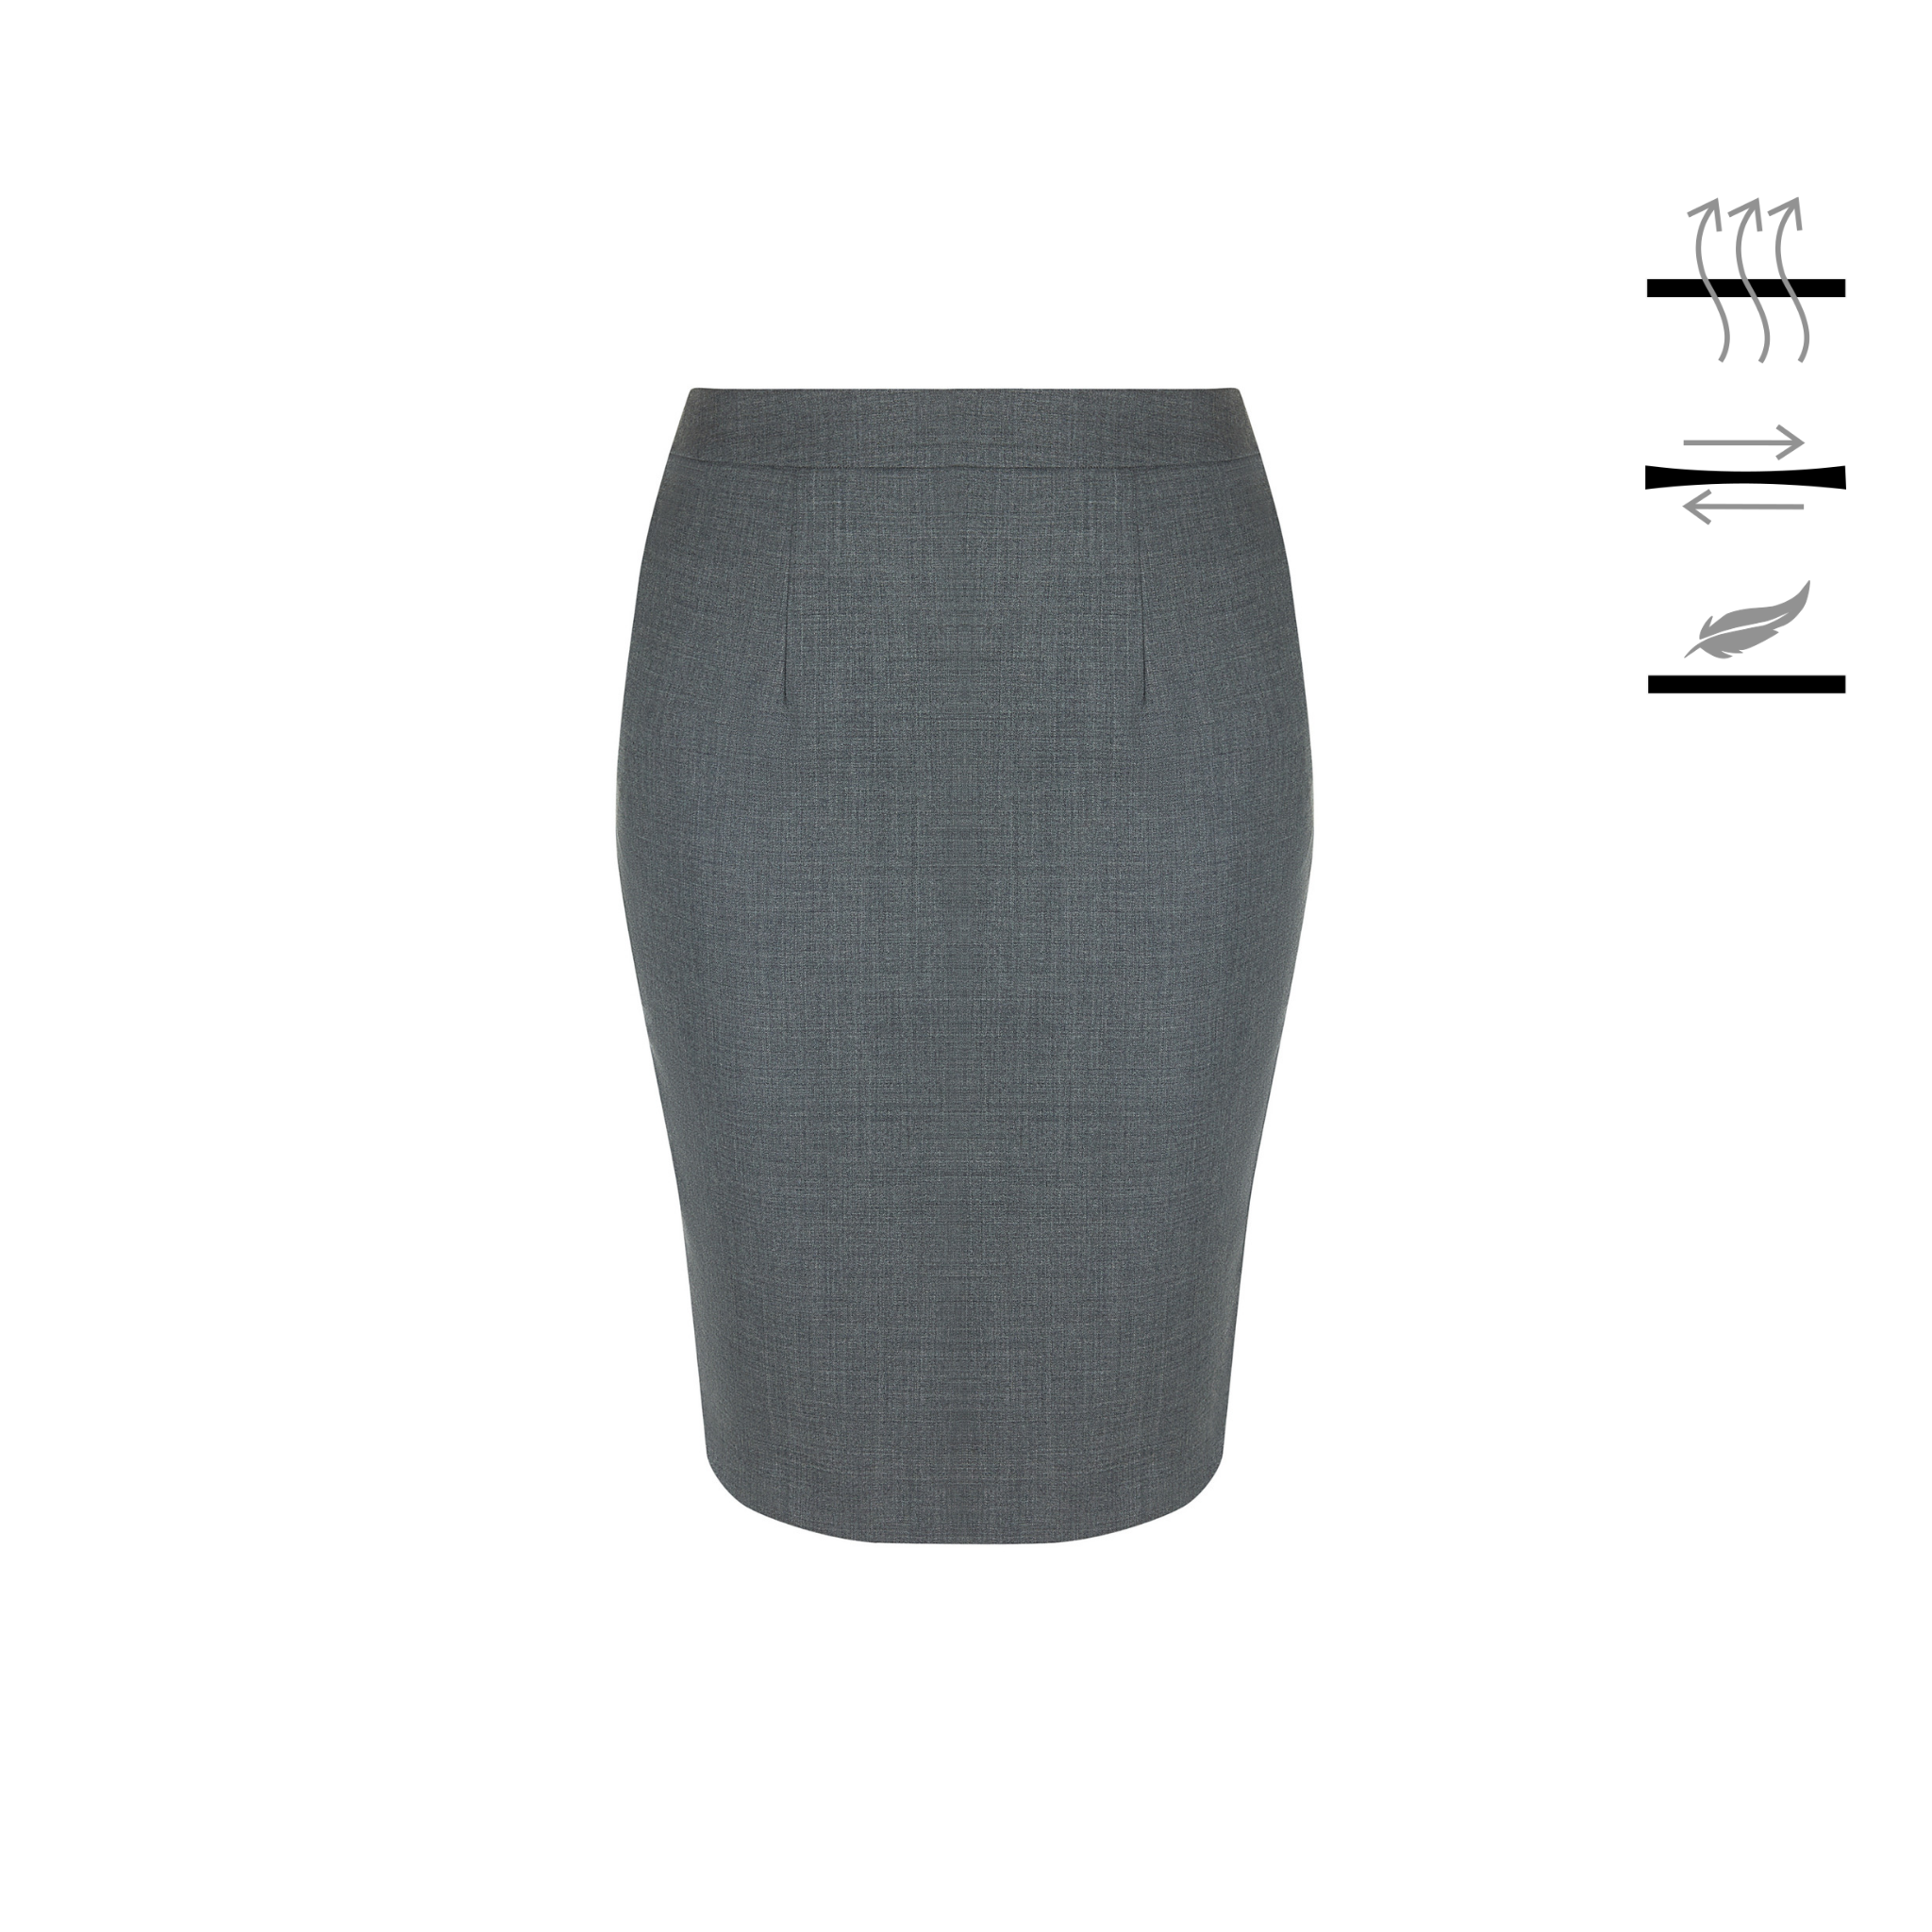 Grey pencil skirt finished for unrestricted movement and next-to-skin comfort